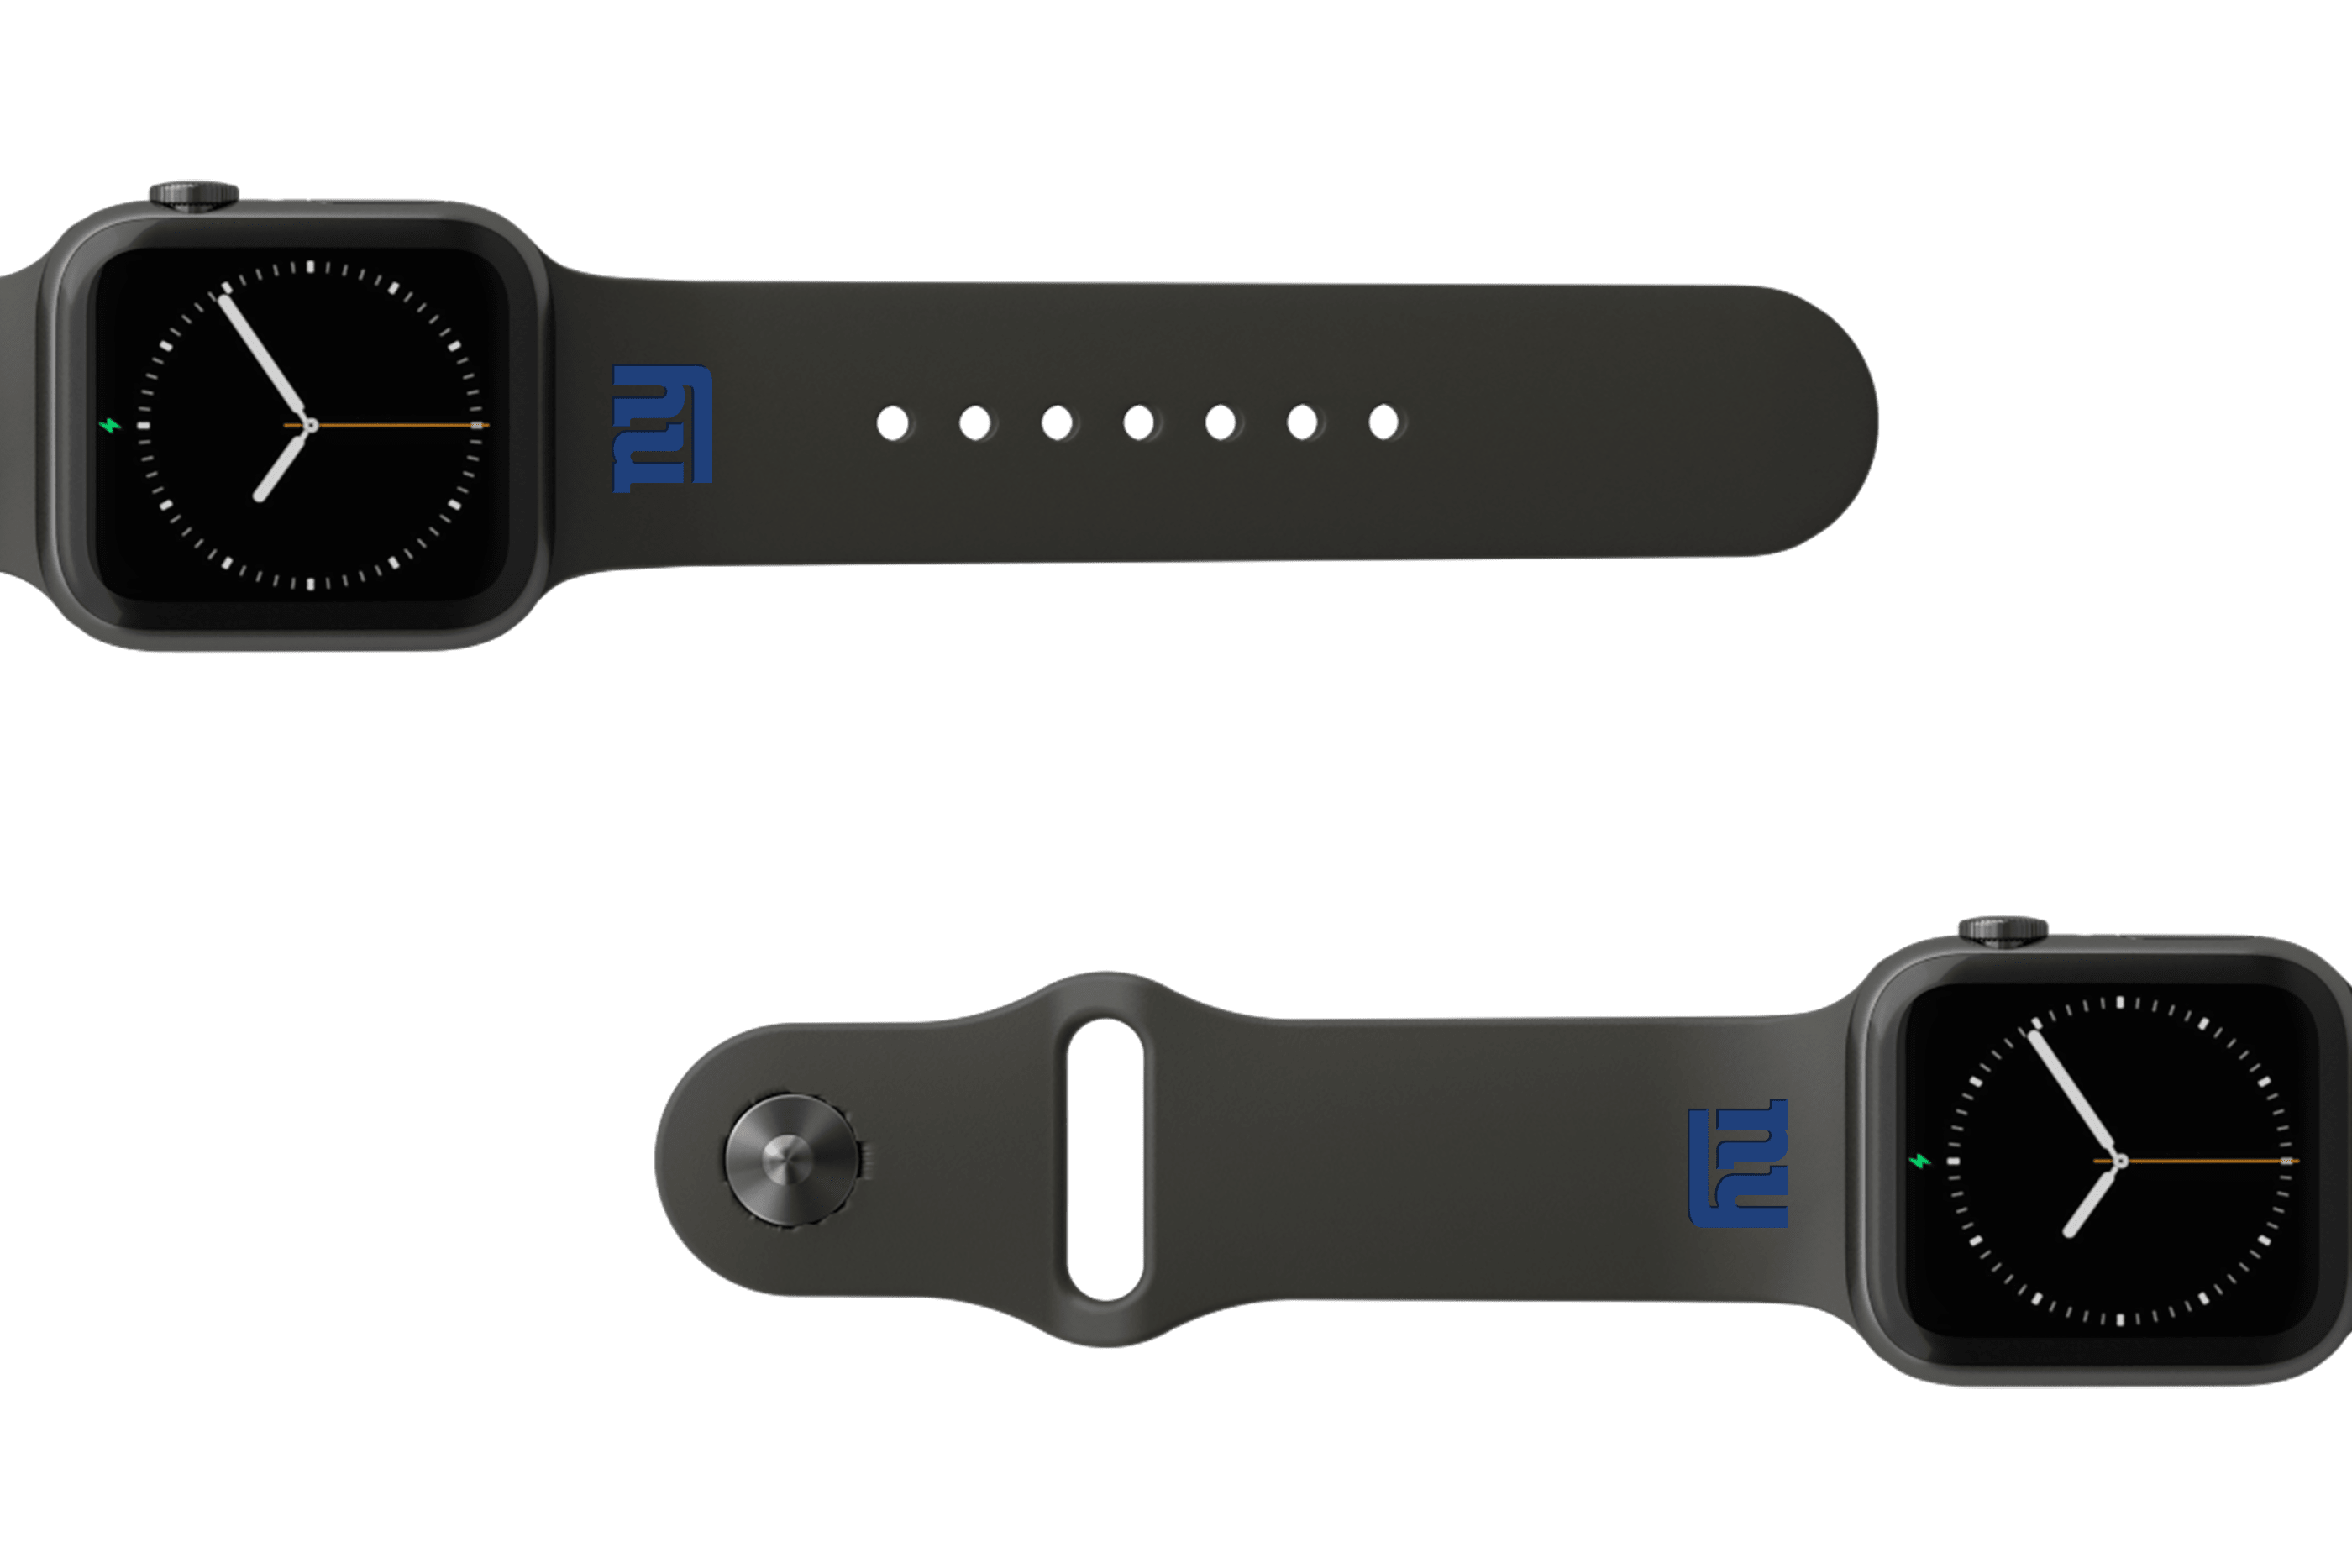 NFL New York Giants Black   apple watch band with gray hardware viewed from top down